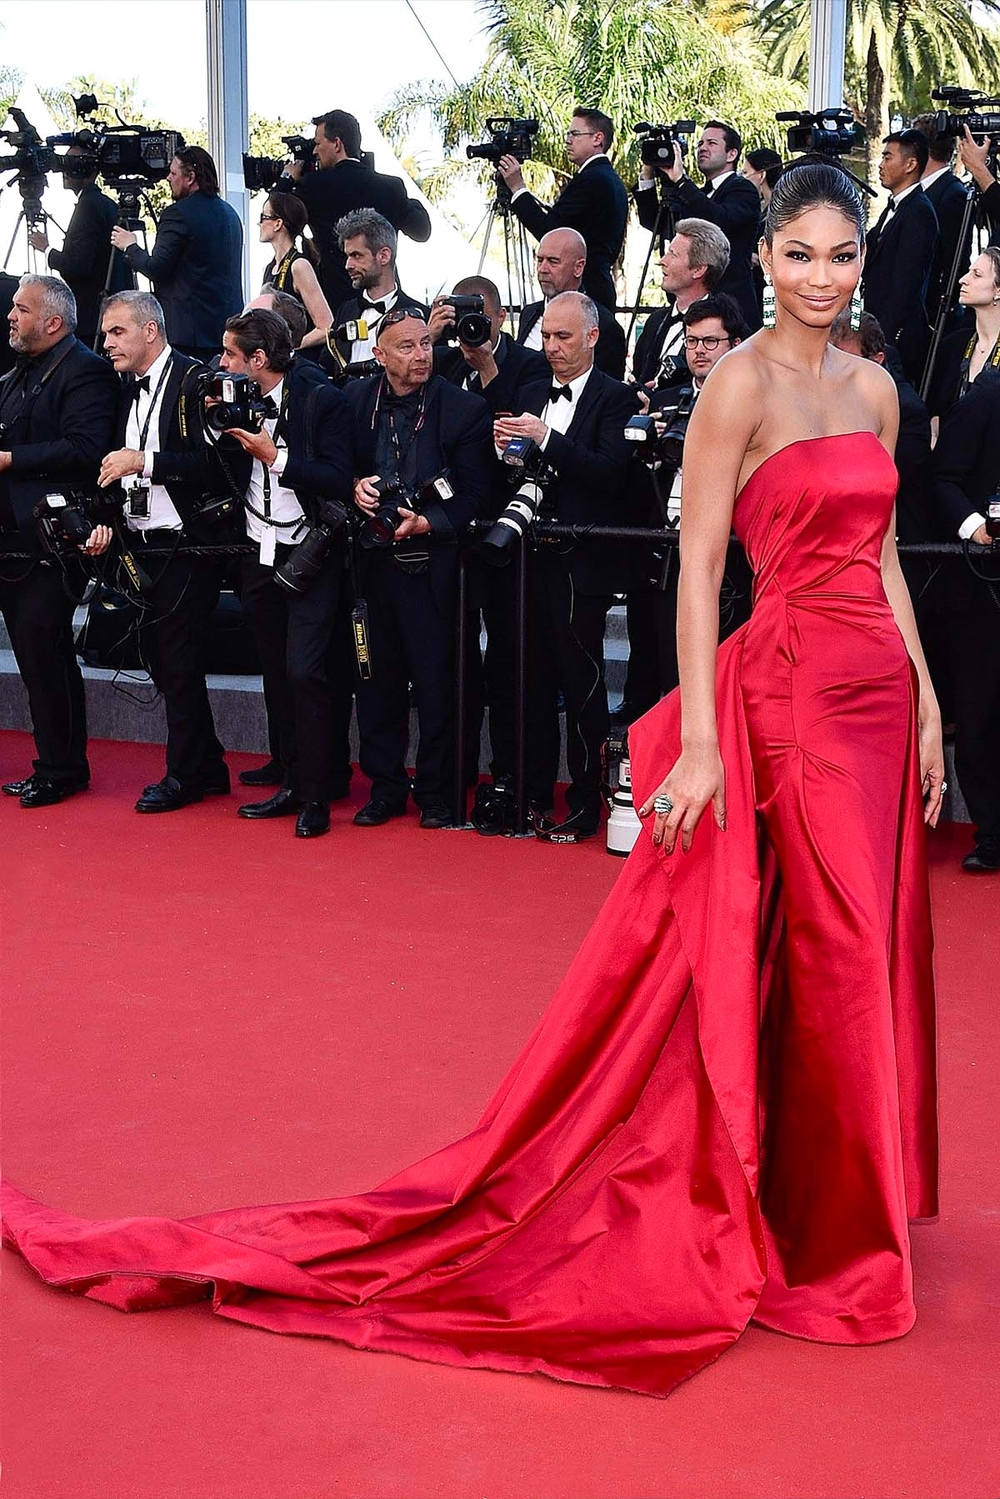 Chanel Iman in Donna Karan Atelier         vogue.co.uk/  Getty